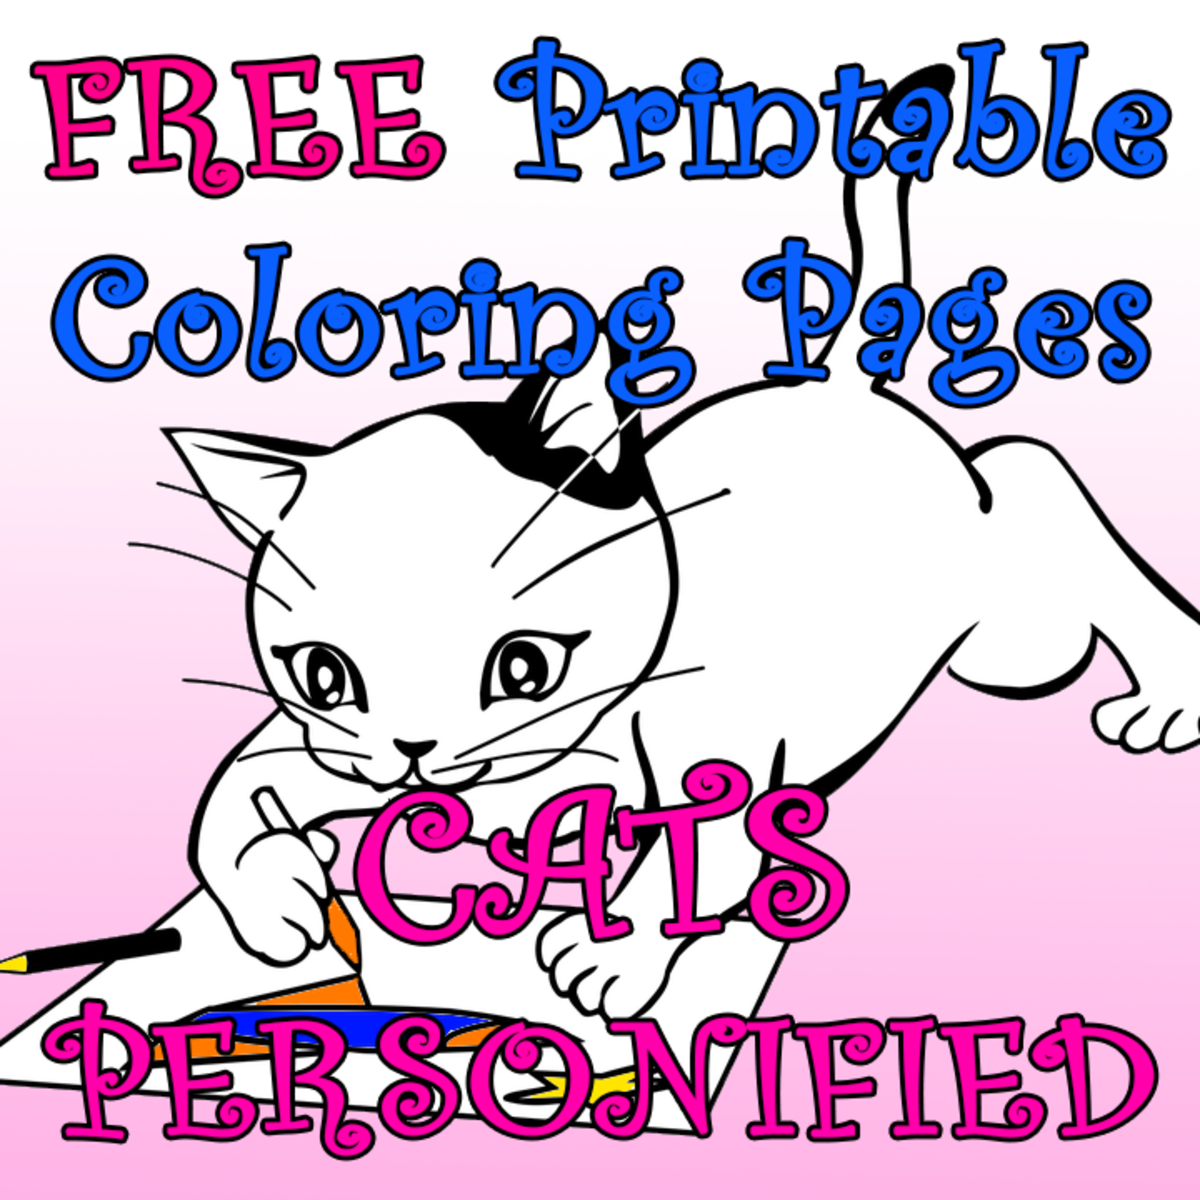 Cats Personified: 10 Free Printable Coloring Pages for Kids